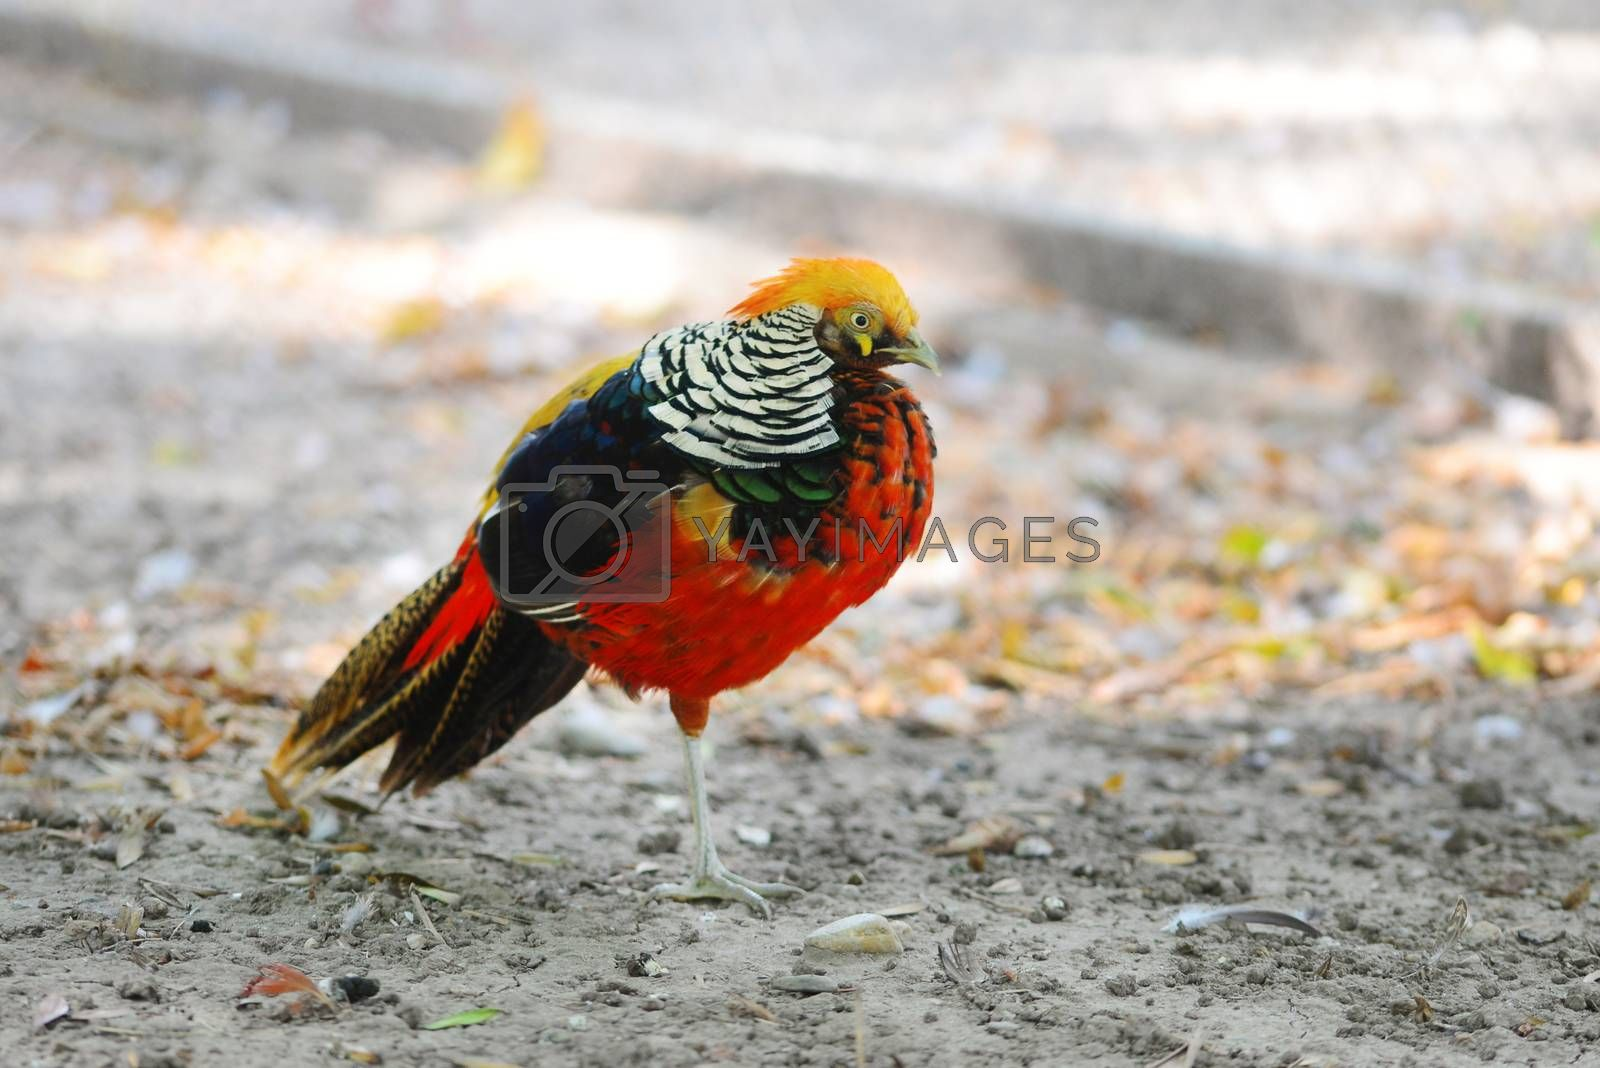 Royalty free image of Golden pheasant by tony4urban